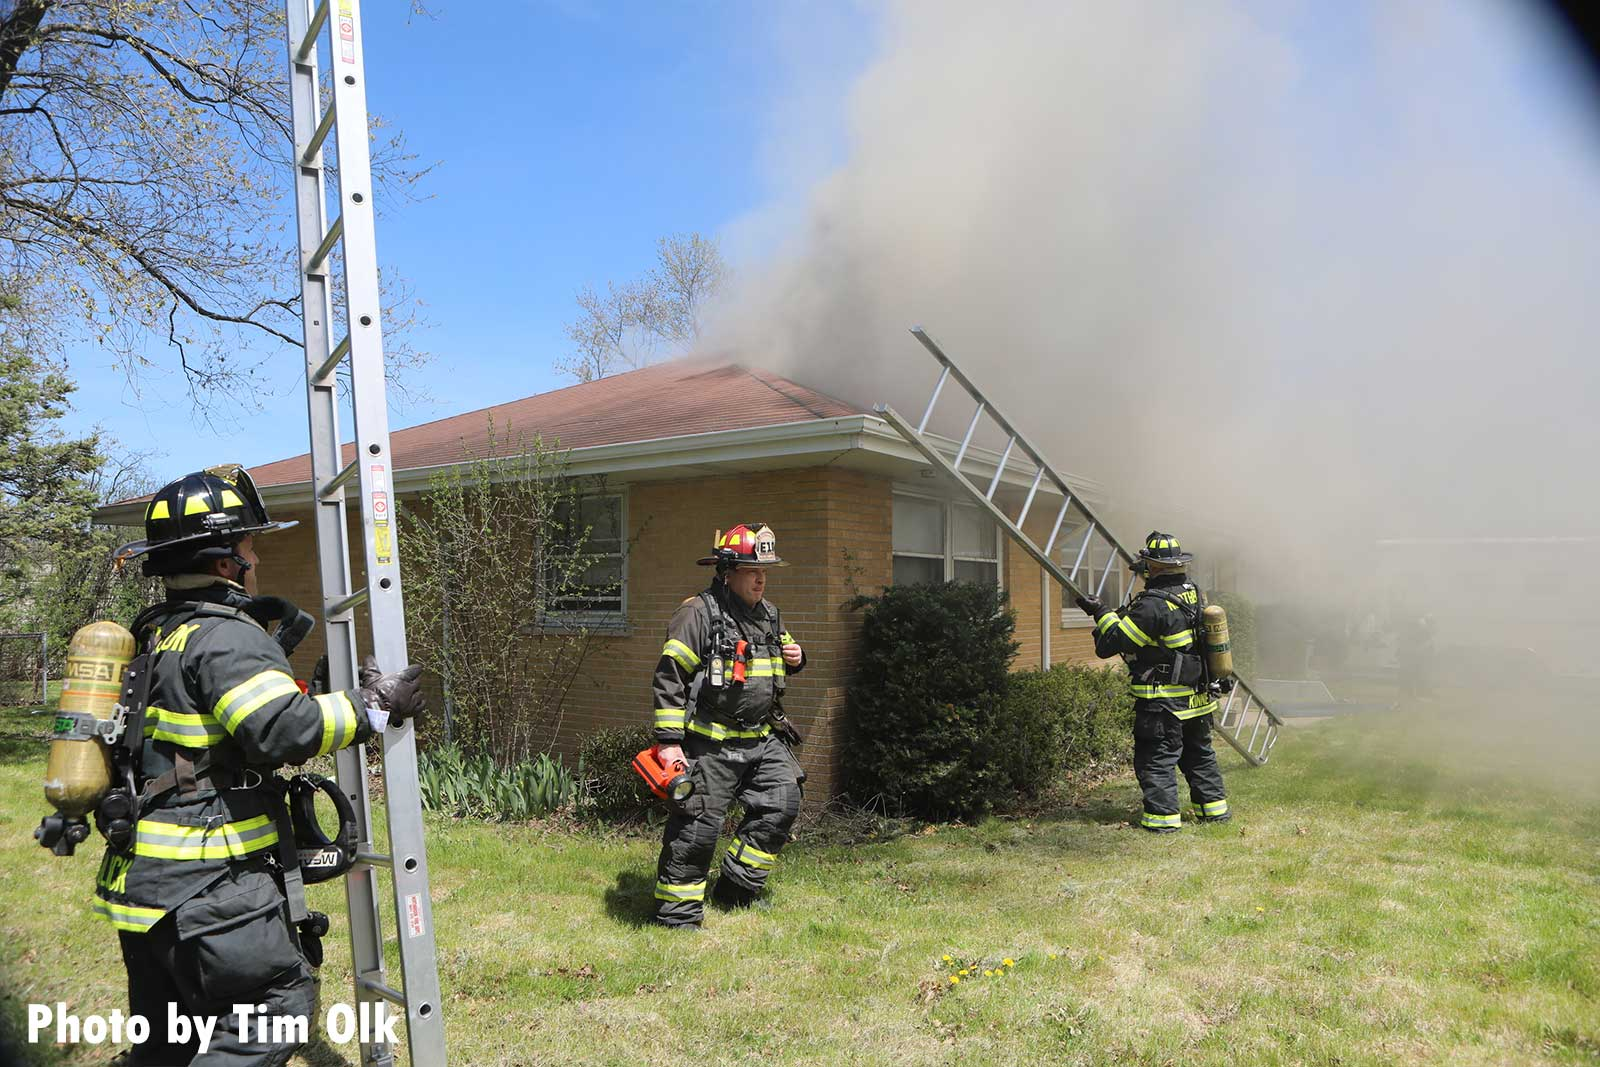 Firefighters begin to raise ladders at the home